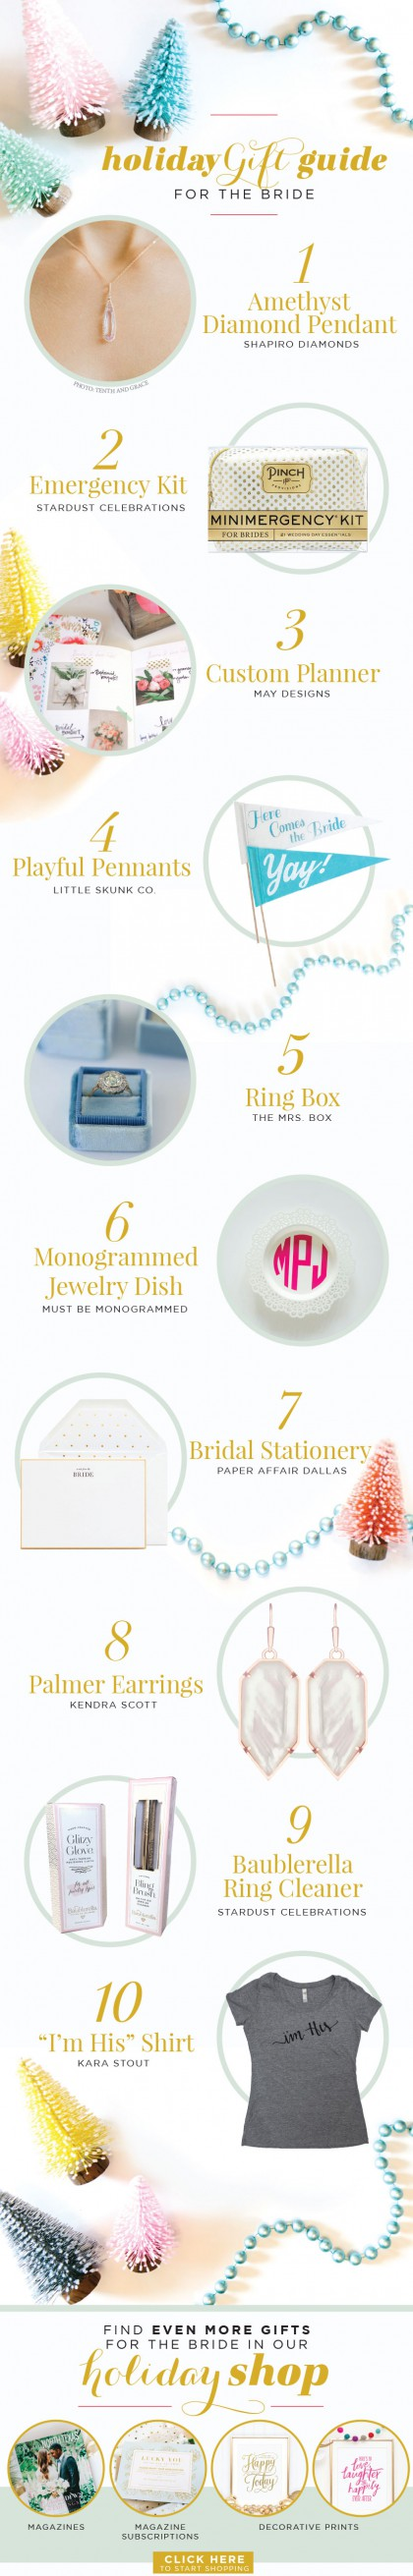 Image in the blog=> Top 10 Holiday Gifts for the Bride - holidaygiftguide_blogs_BONT.jpg